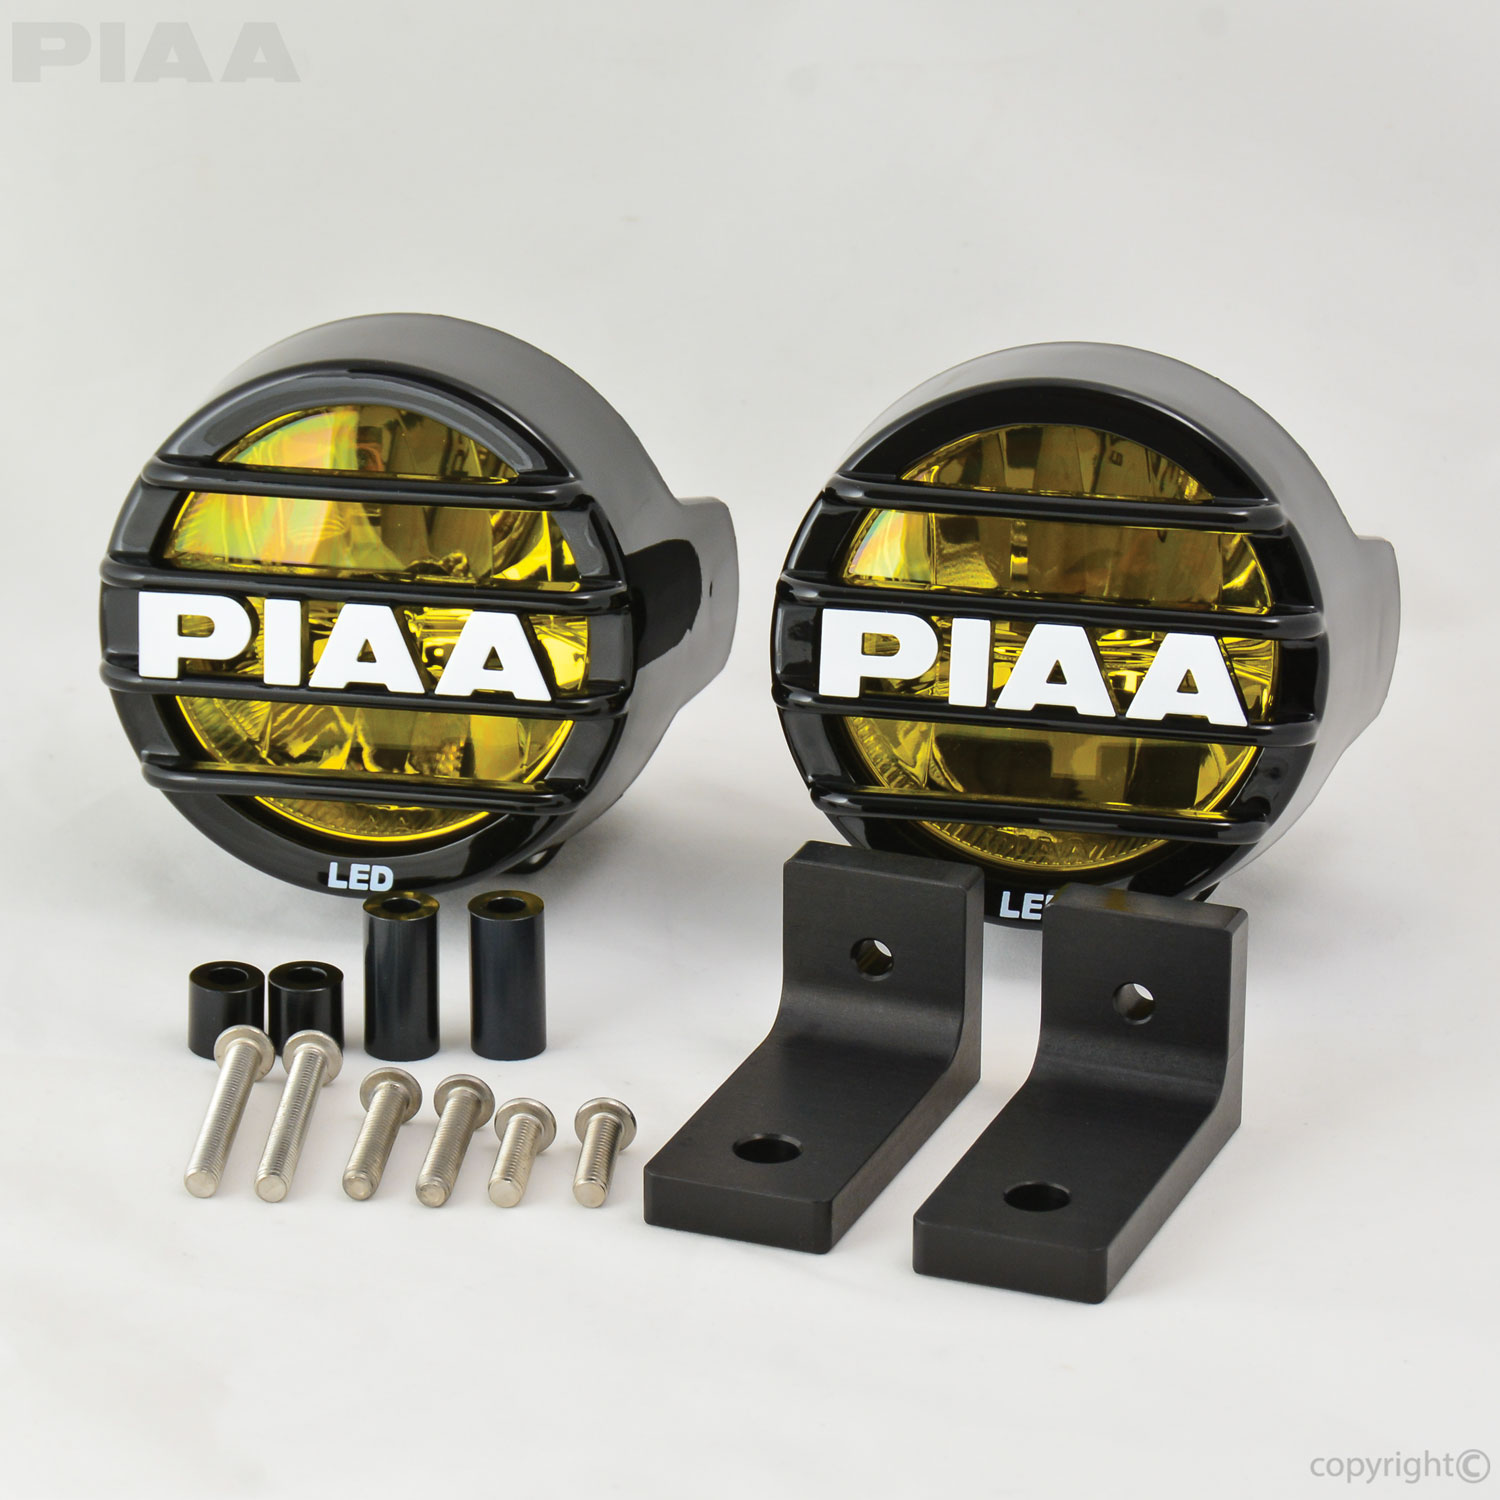 wiring diagram for piaa lights wiring library